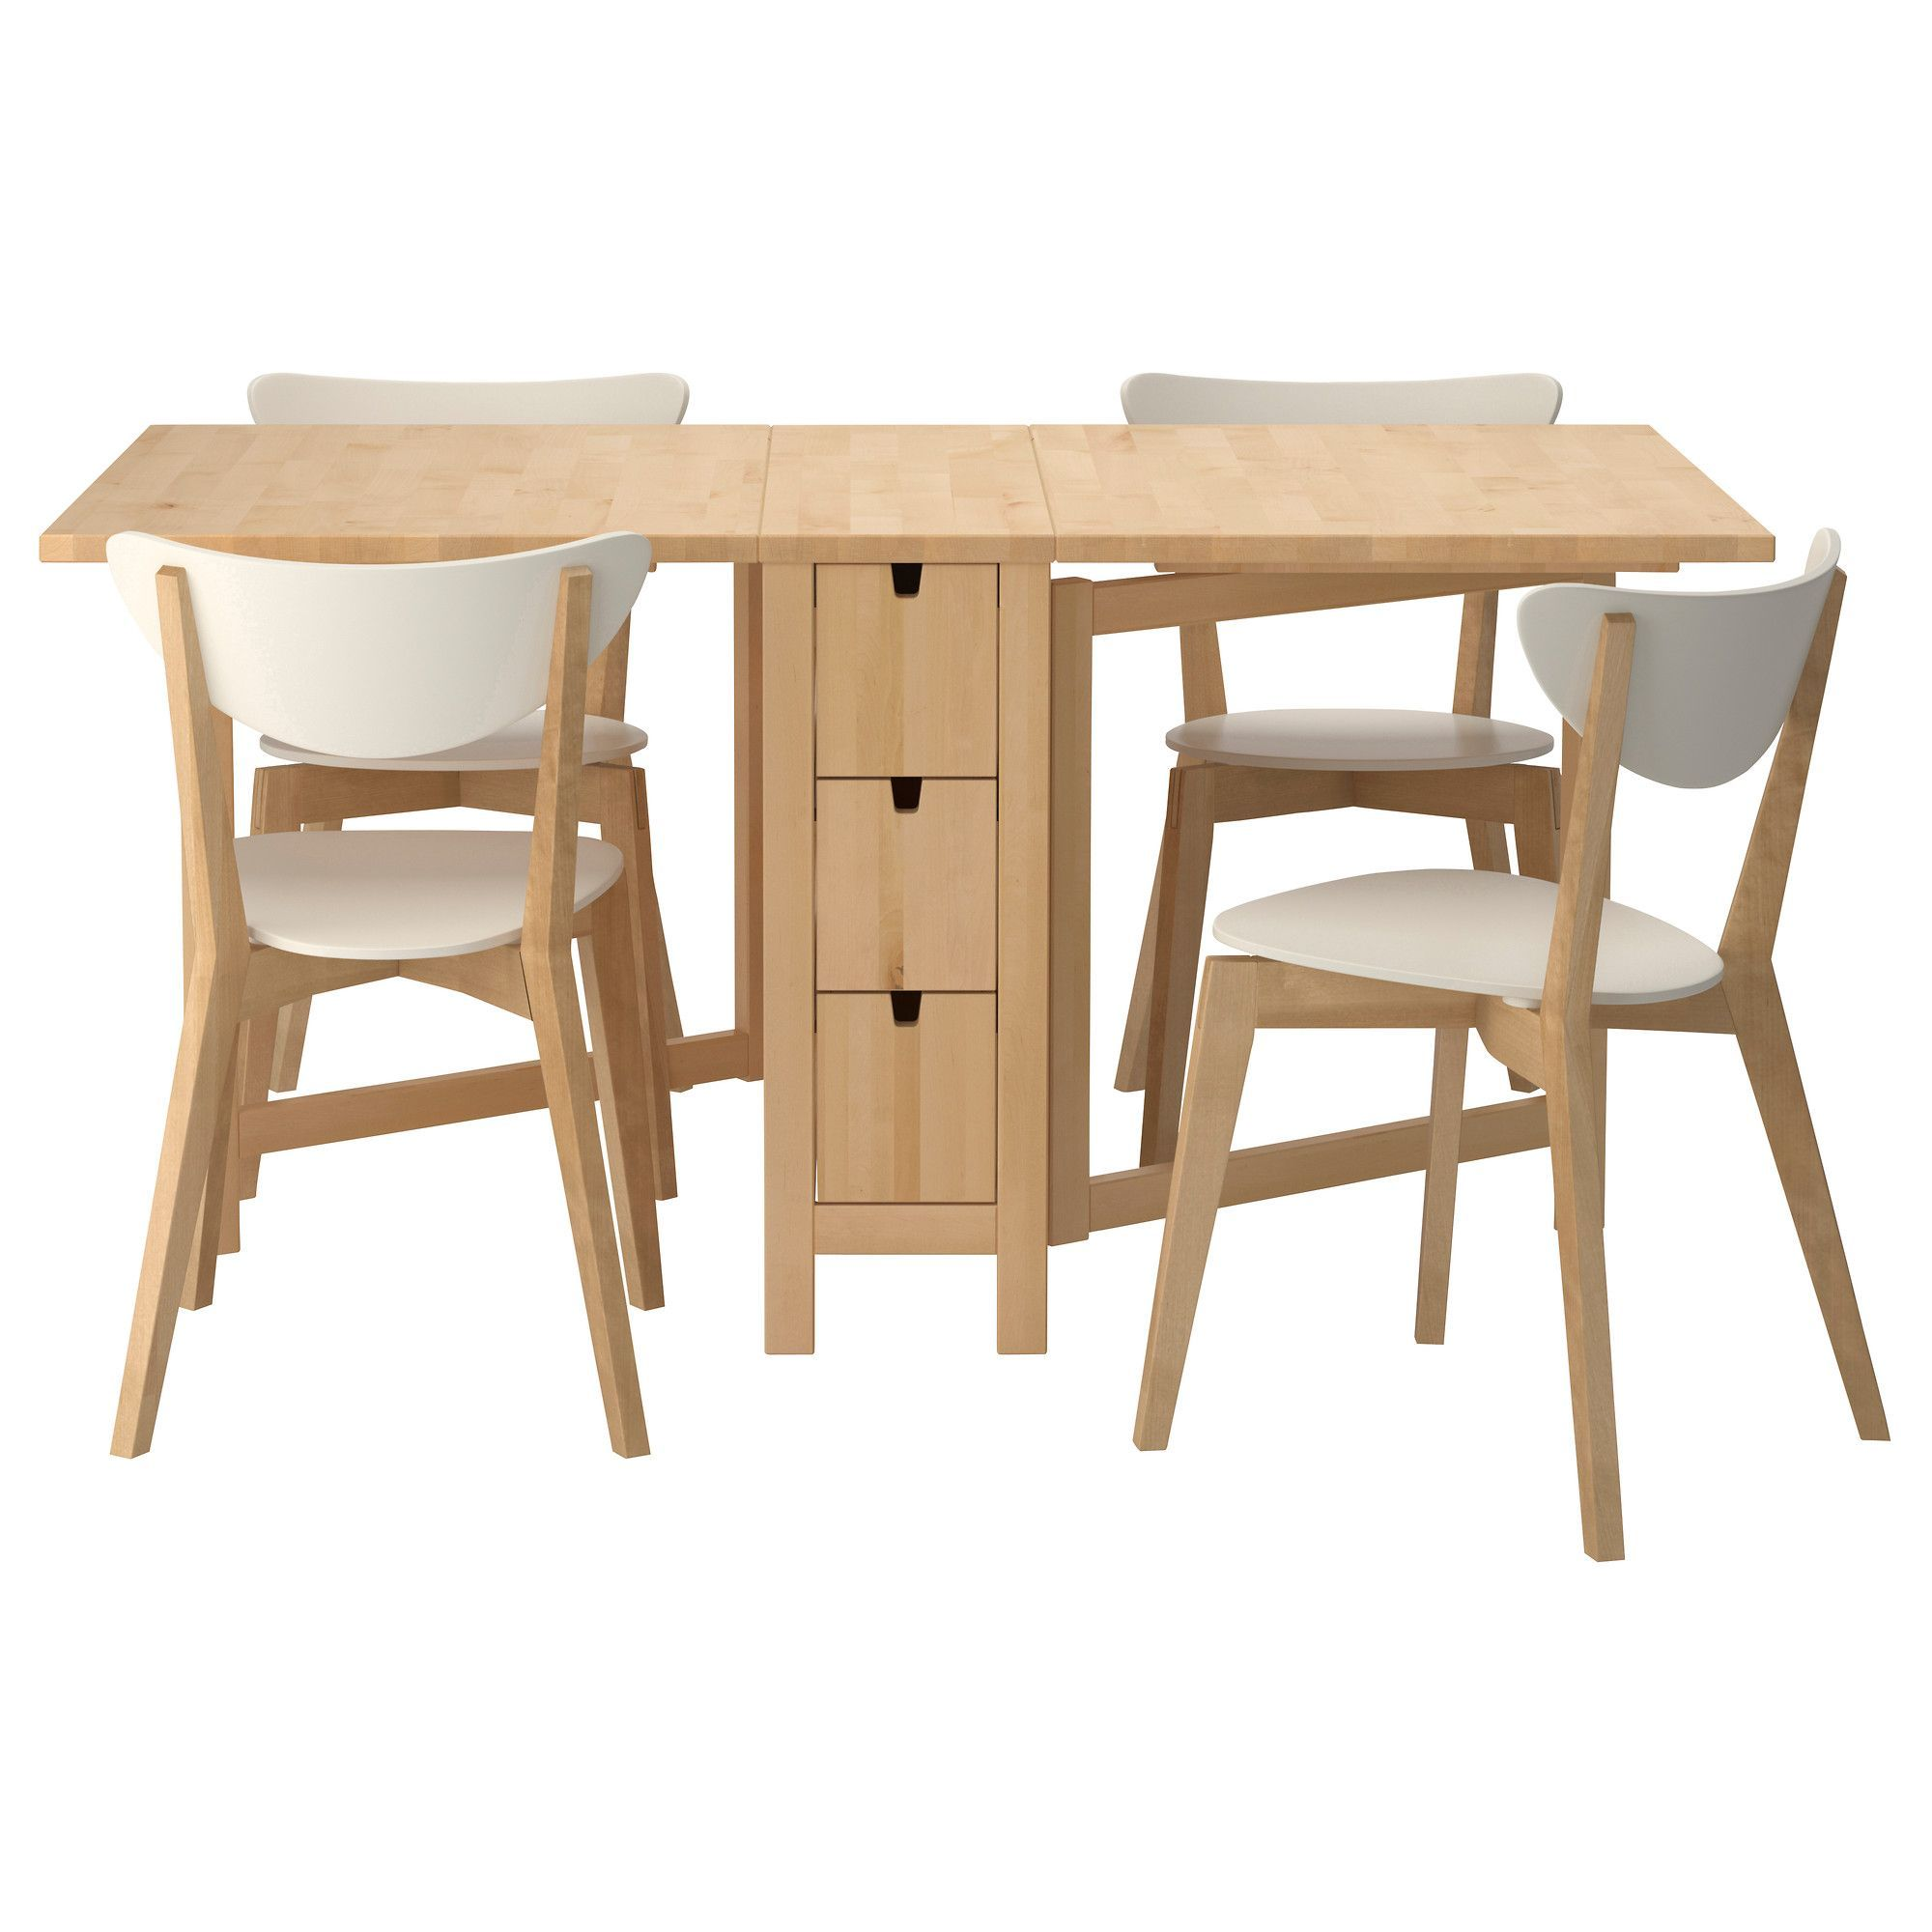 Folding Kitchen Table And Chairs Argos White Leather Accent Chair Gorgeous Small Dining That Can Be Folded Complete